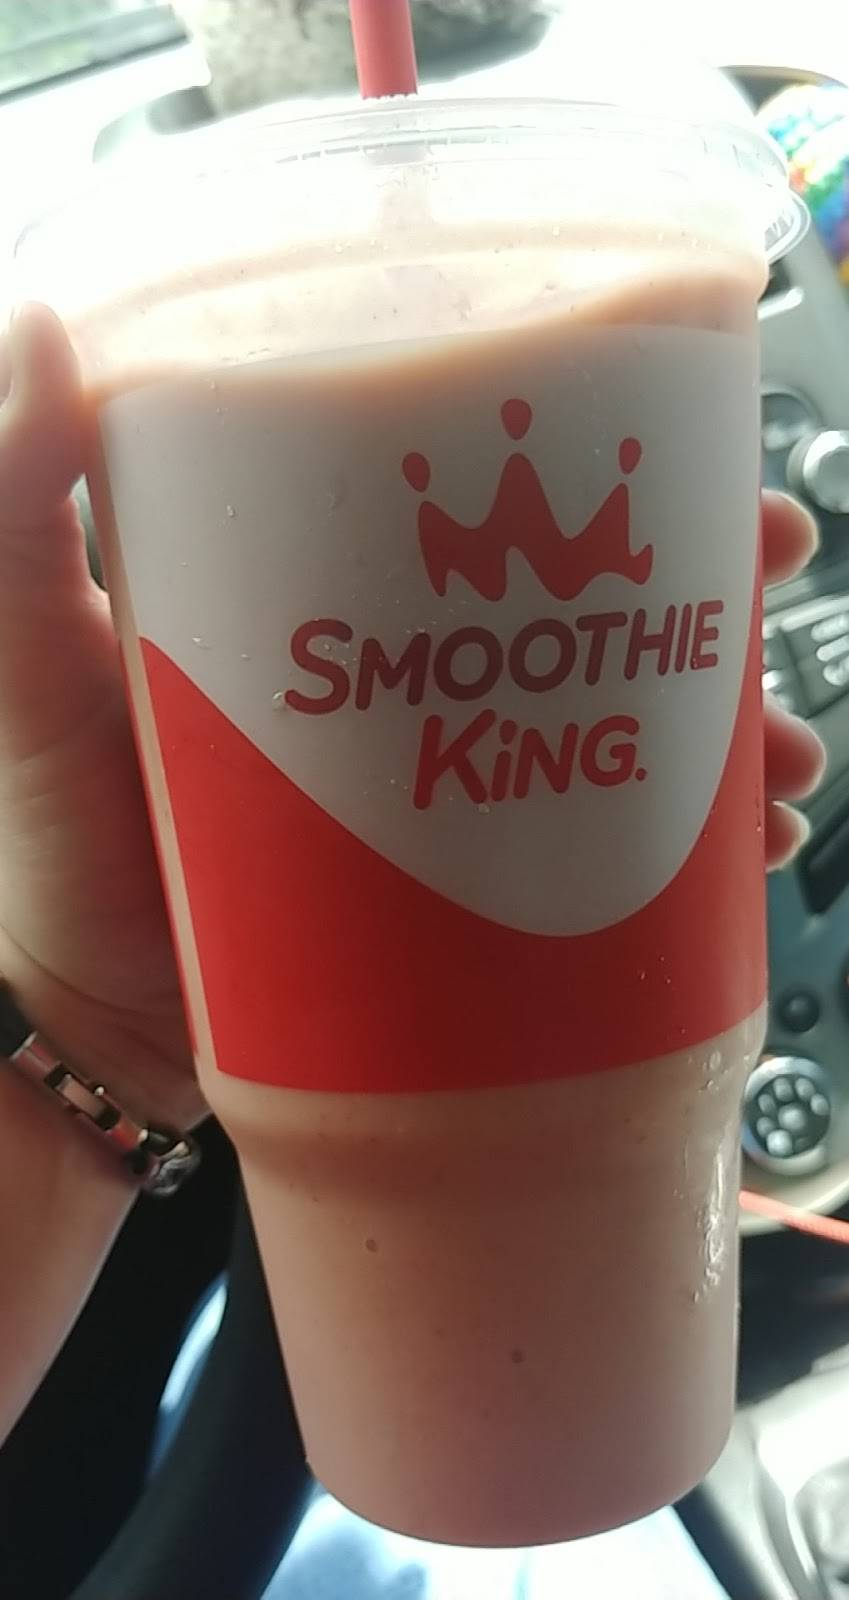 Smoothie King | restaurant | 106 Boston Post Rd, Waterford, CT 06385, USA | 8605749382 OR +1 860-574-9382